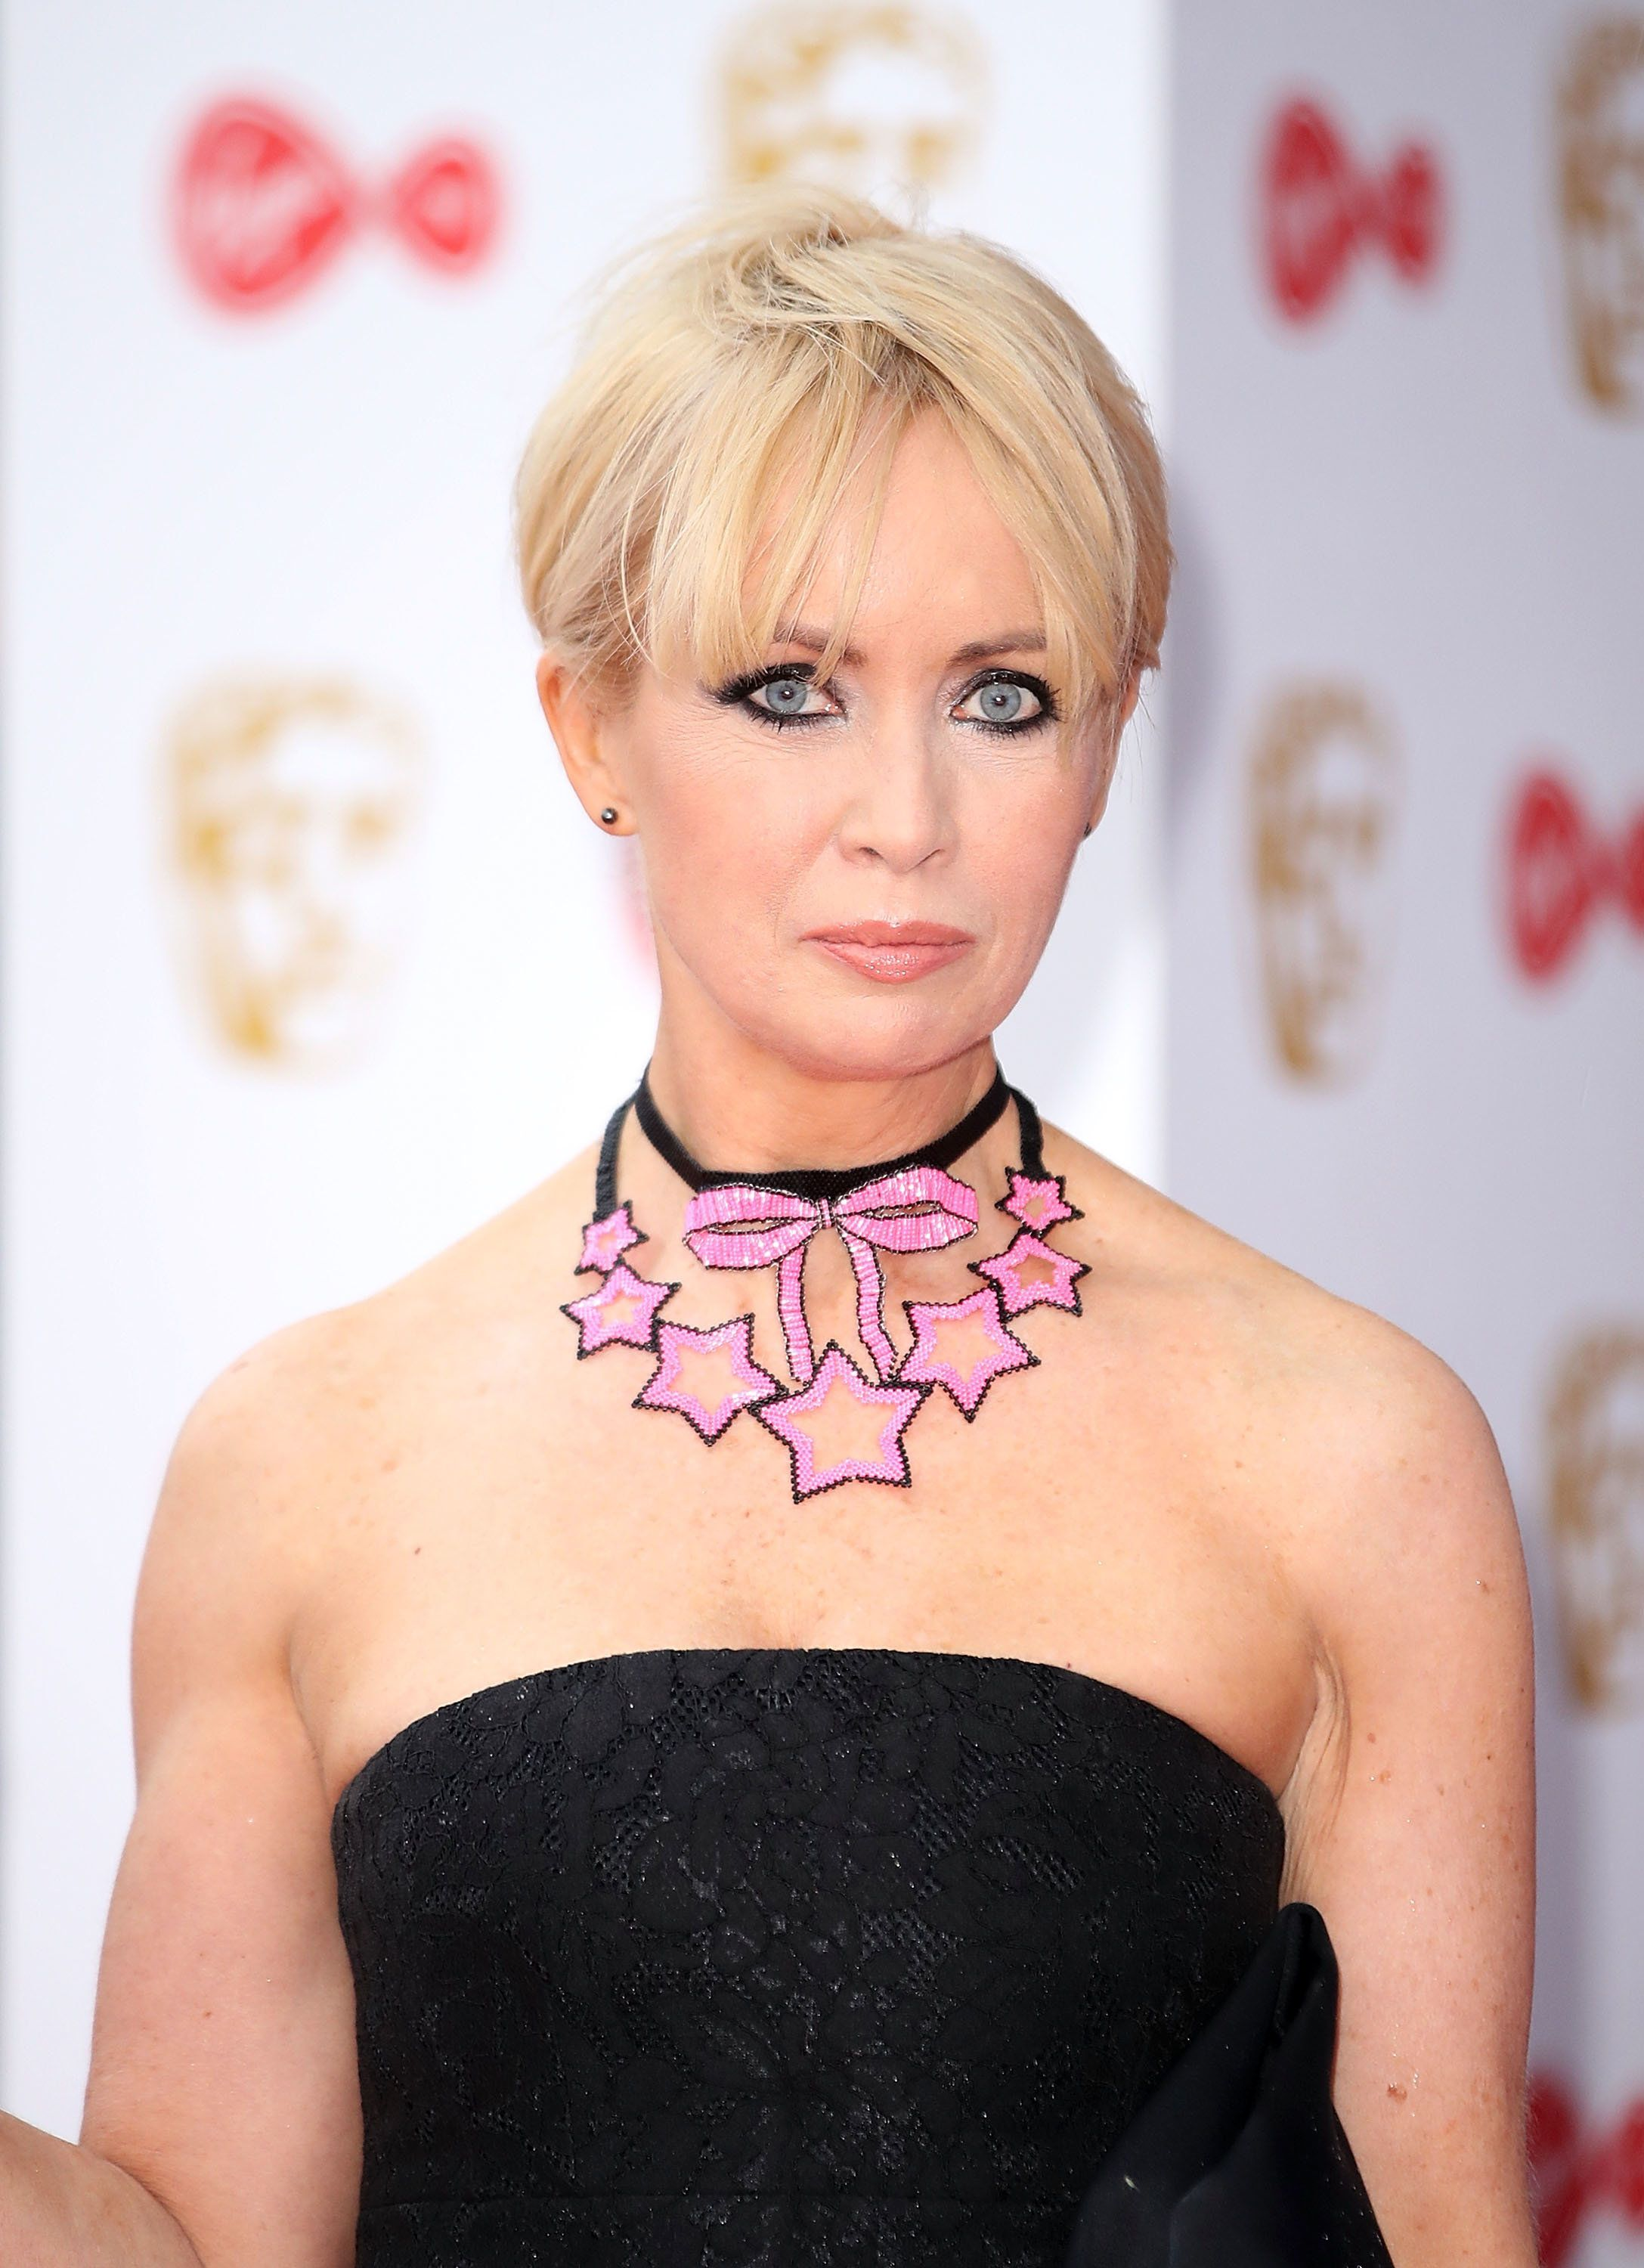 'Hollyoaks' Actress Lysette Anthony Says Harvey Weinstein Raped Her In Her Own